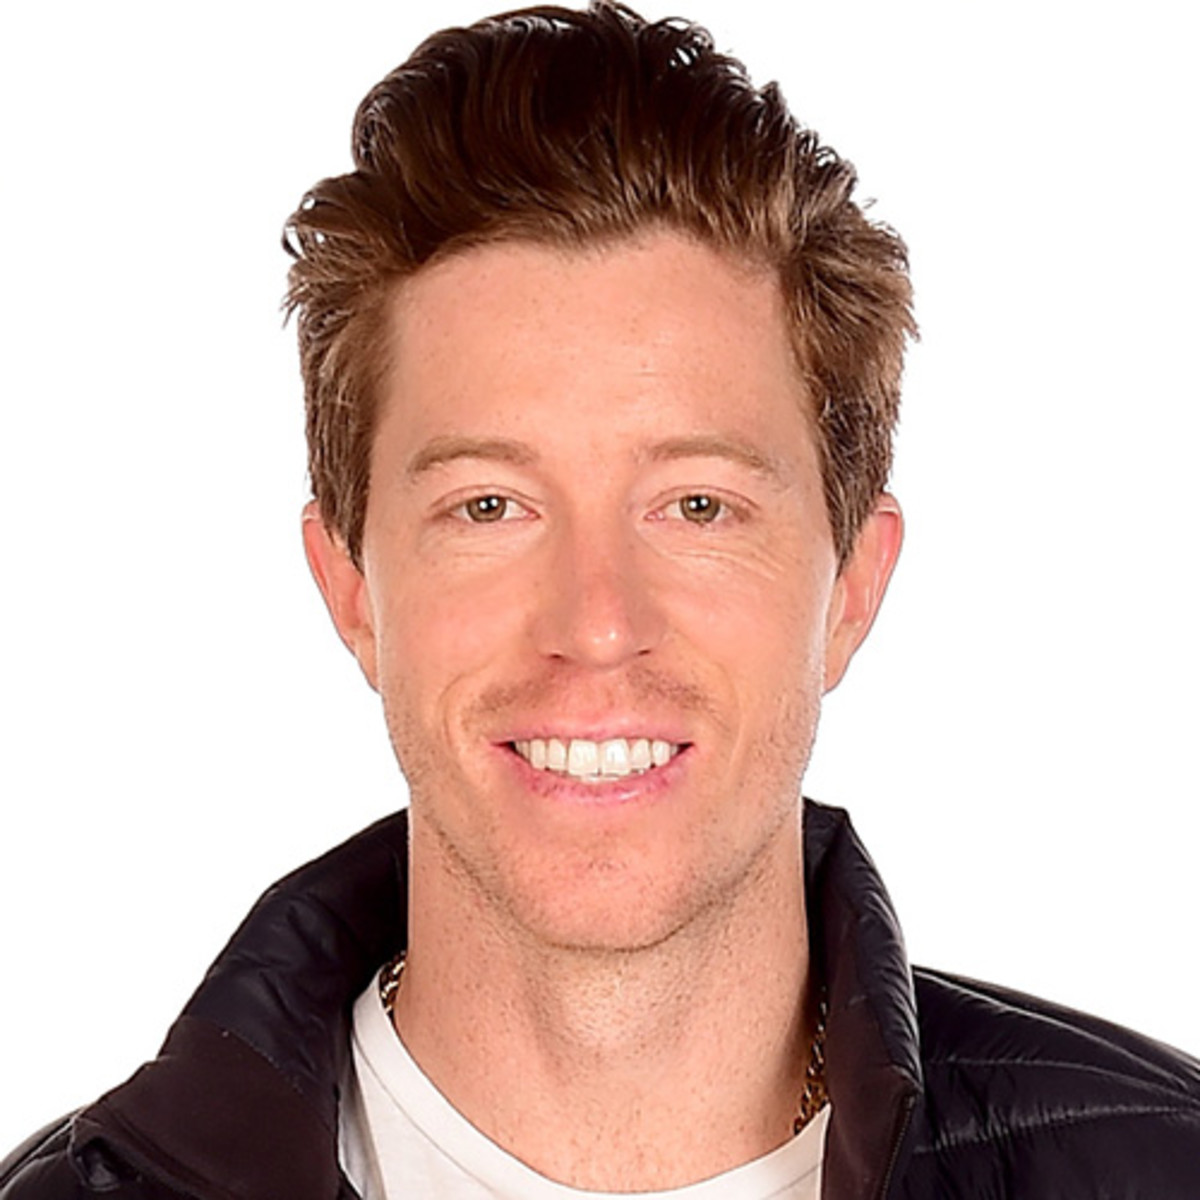 a biography of shaun white Who is shaun white's girlfriend meet sarah barthel shaun white will be competing in the snowboarding halfpipe competition finals later tonight during the 2018 pyeongchang winter olympics.